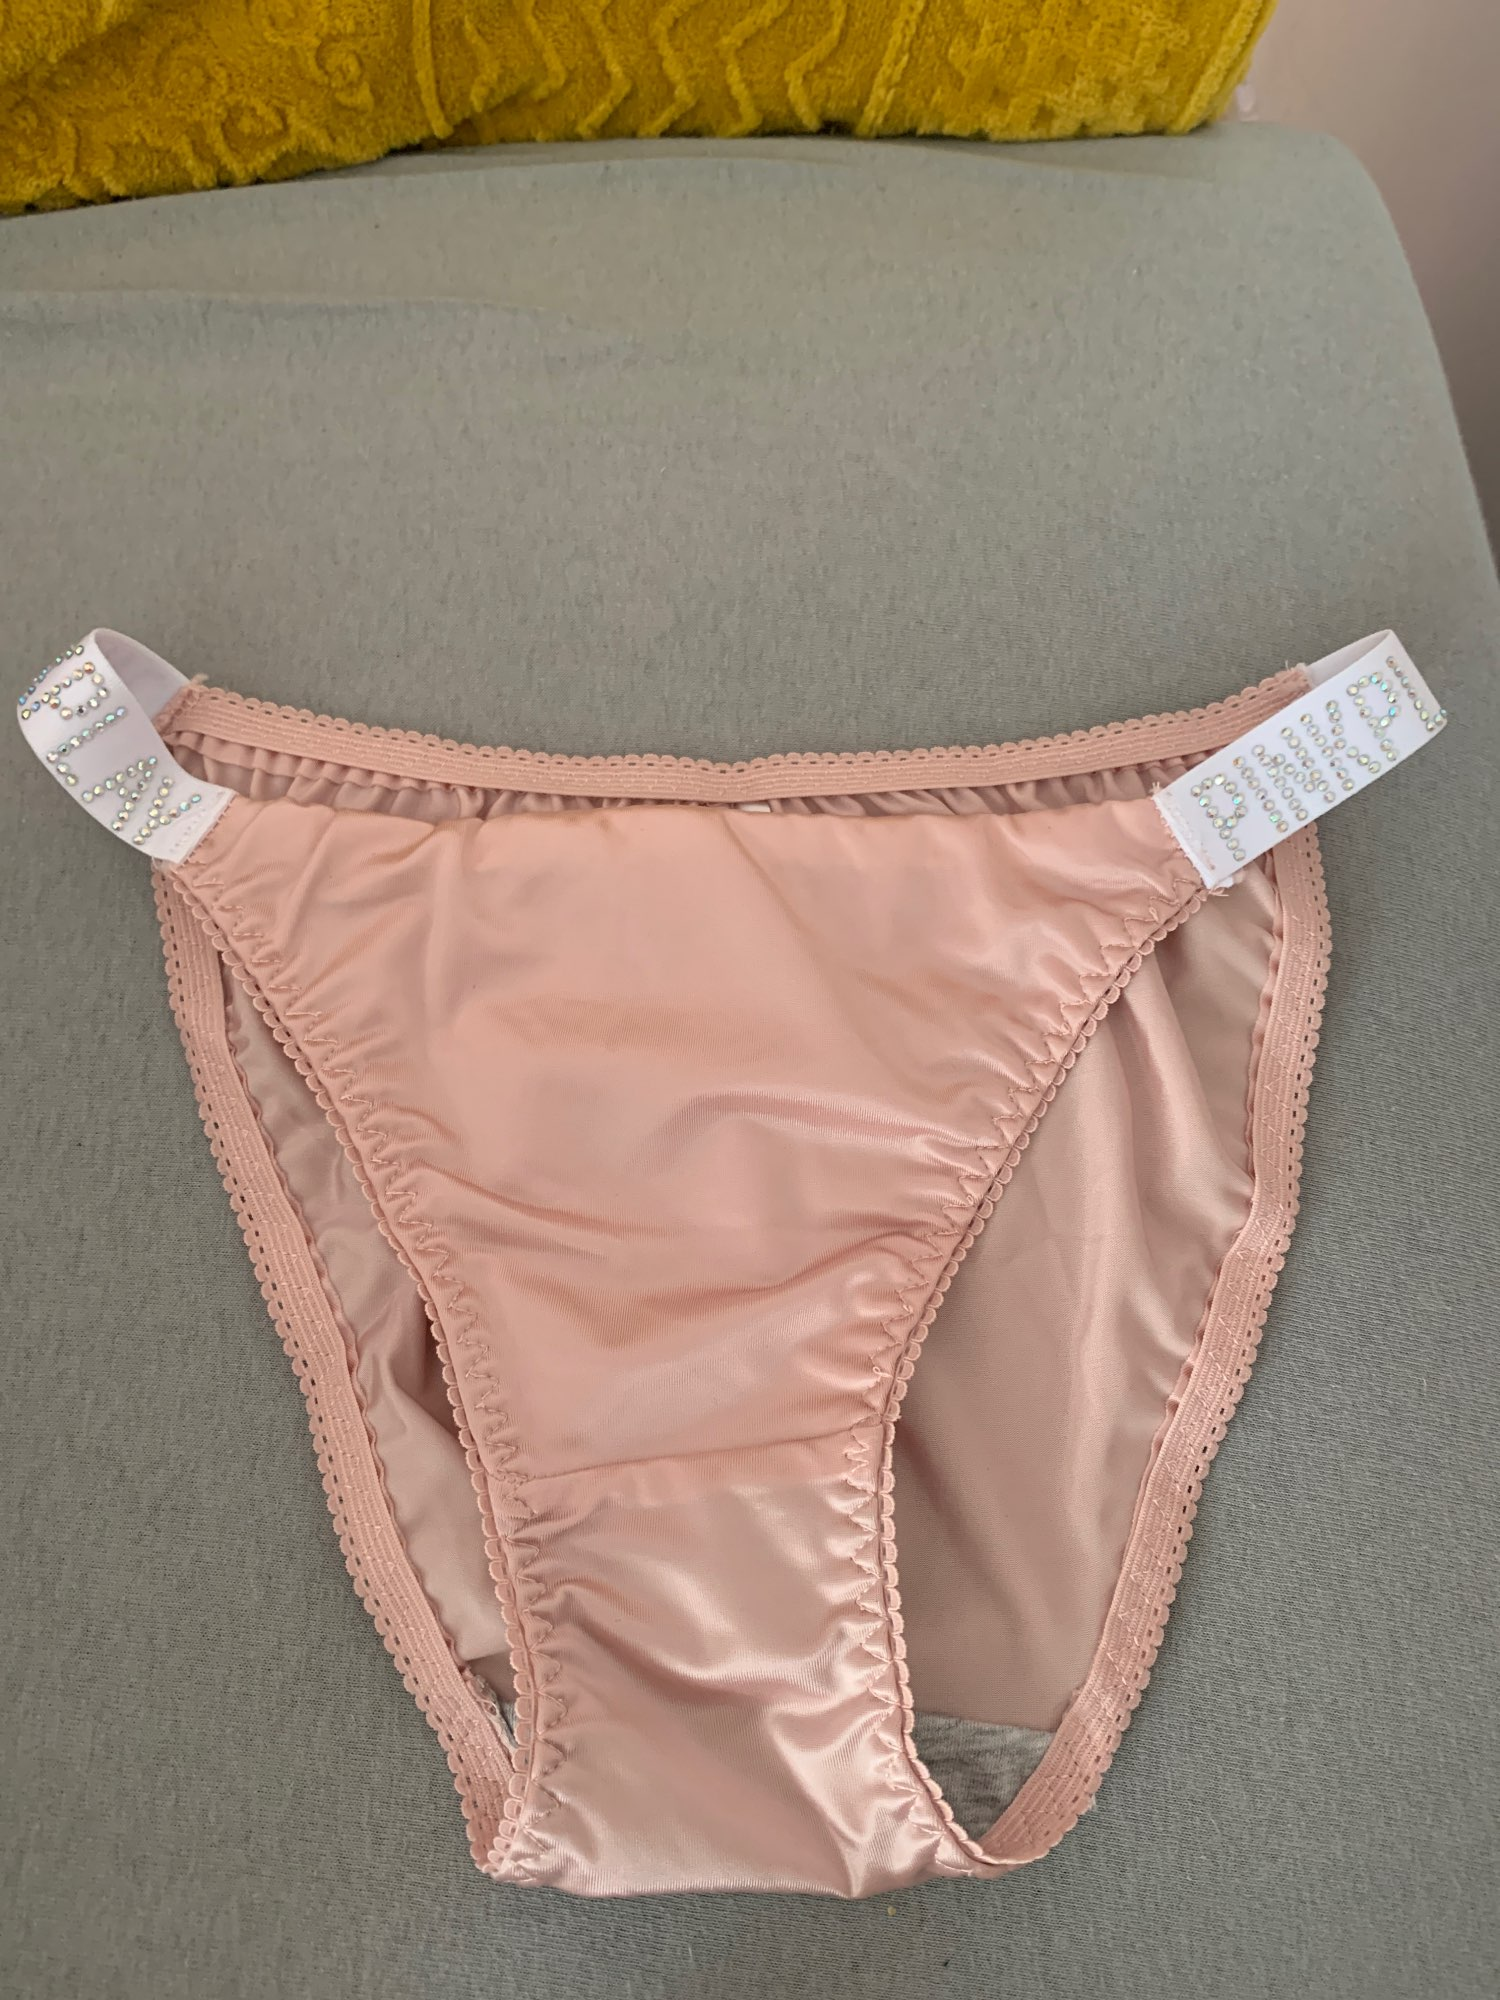 ALLMIX Sexy Women's PINK Letter Sports Panties with Rhinestones Belt Seamless Briefs Low Rise Underwear Underpants Lady Lingerie photo review